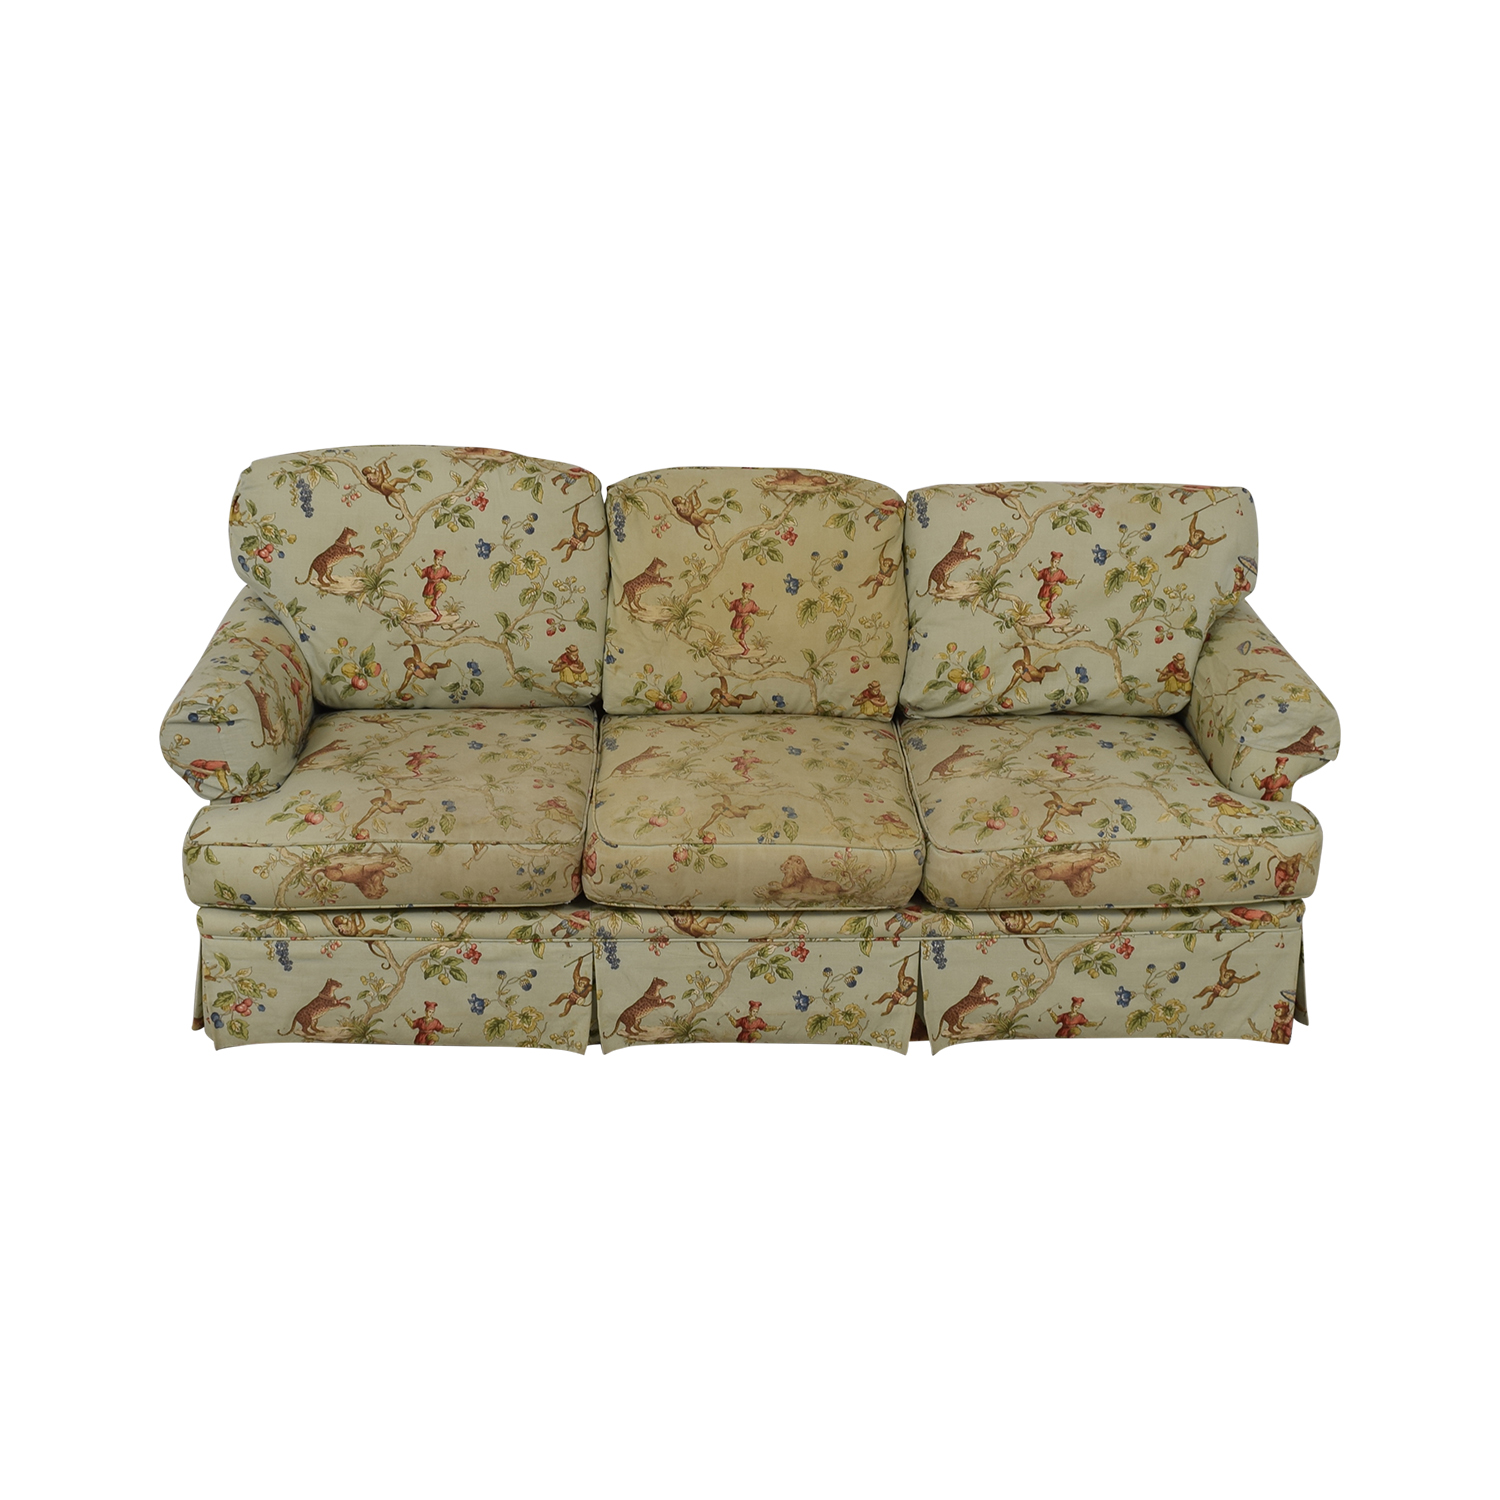 Harden Harden Scalamandre Upholstered Three-Cushion Sofa on sale